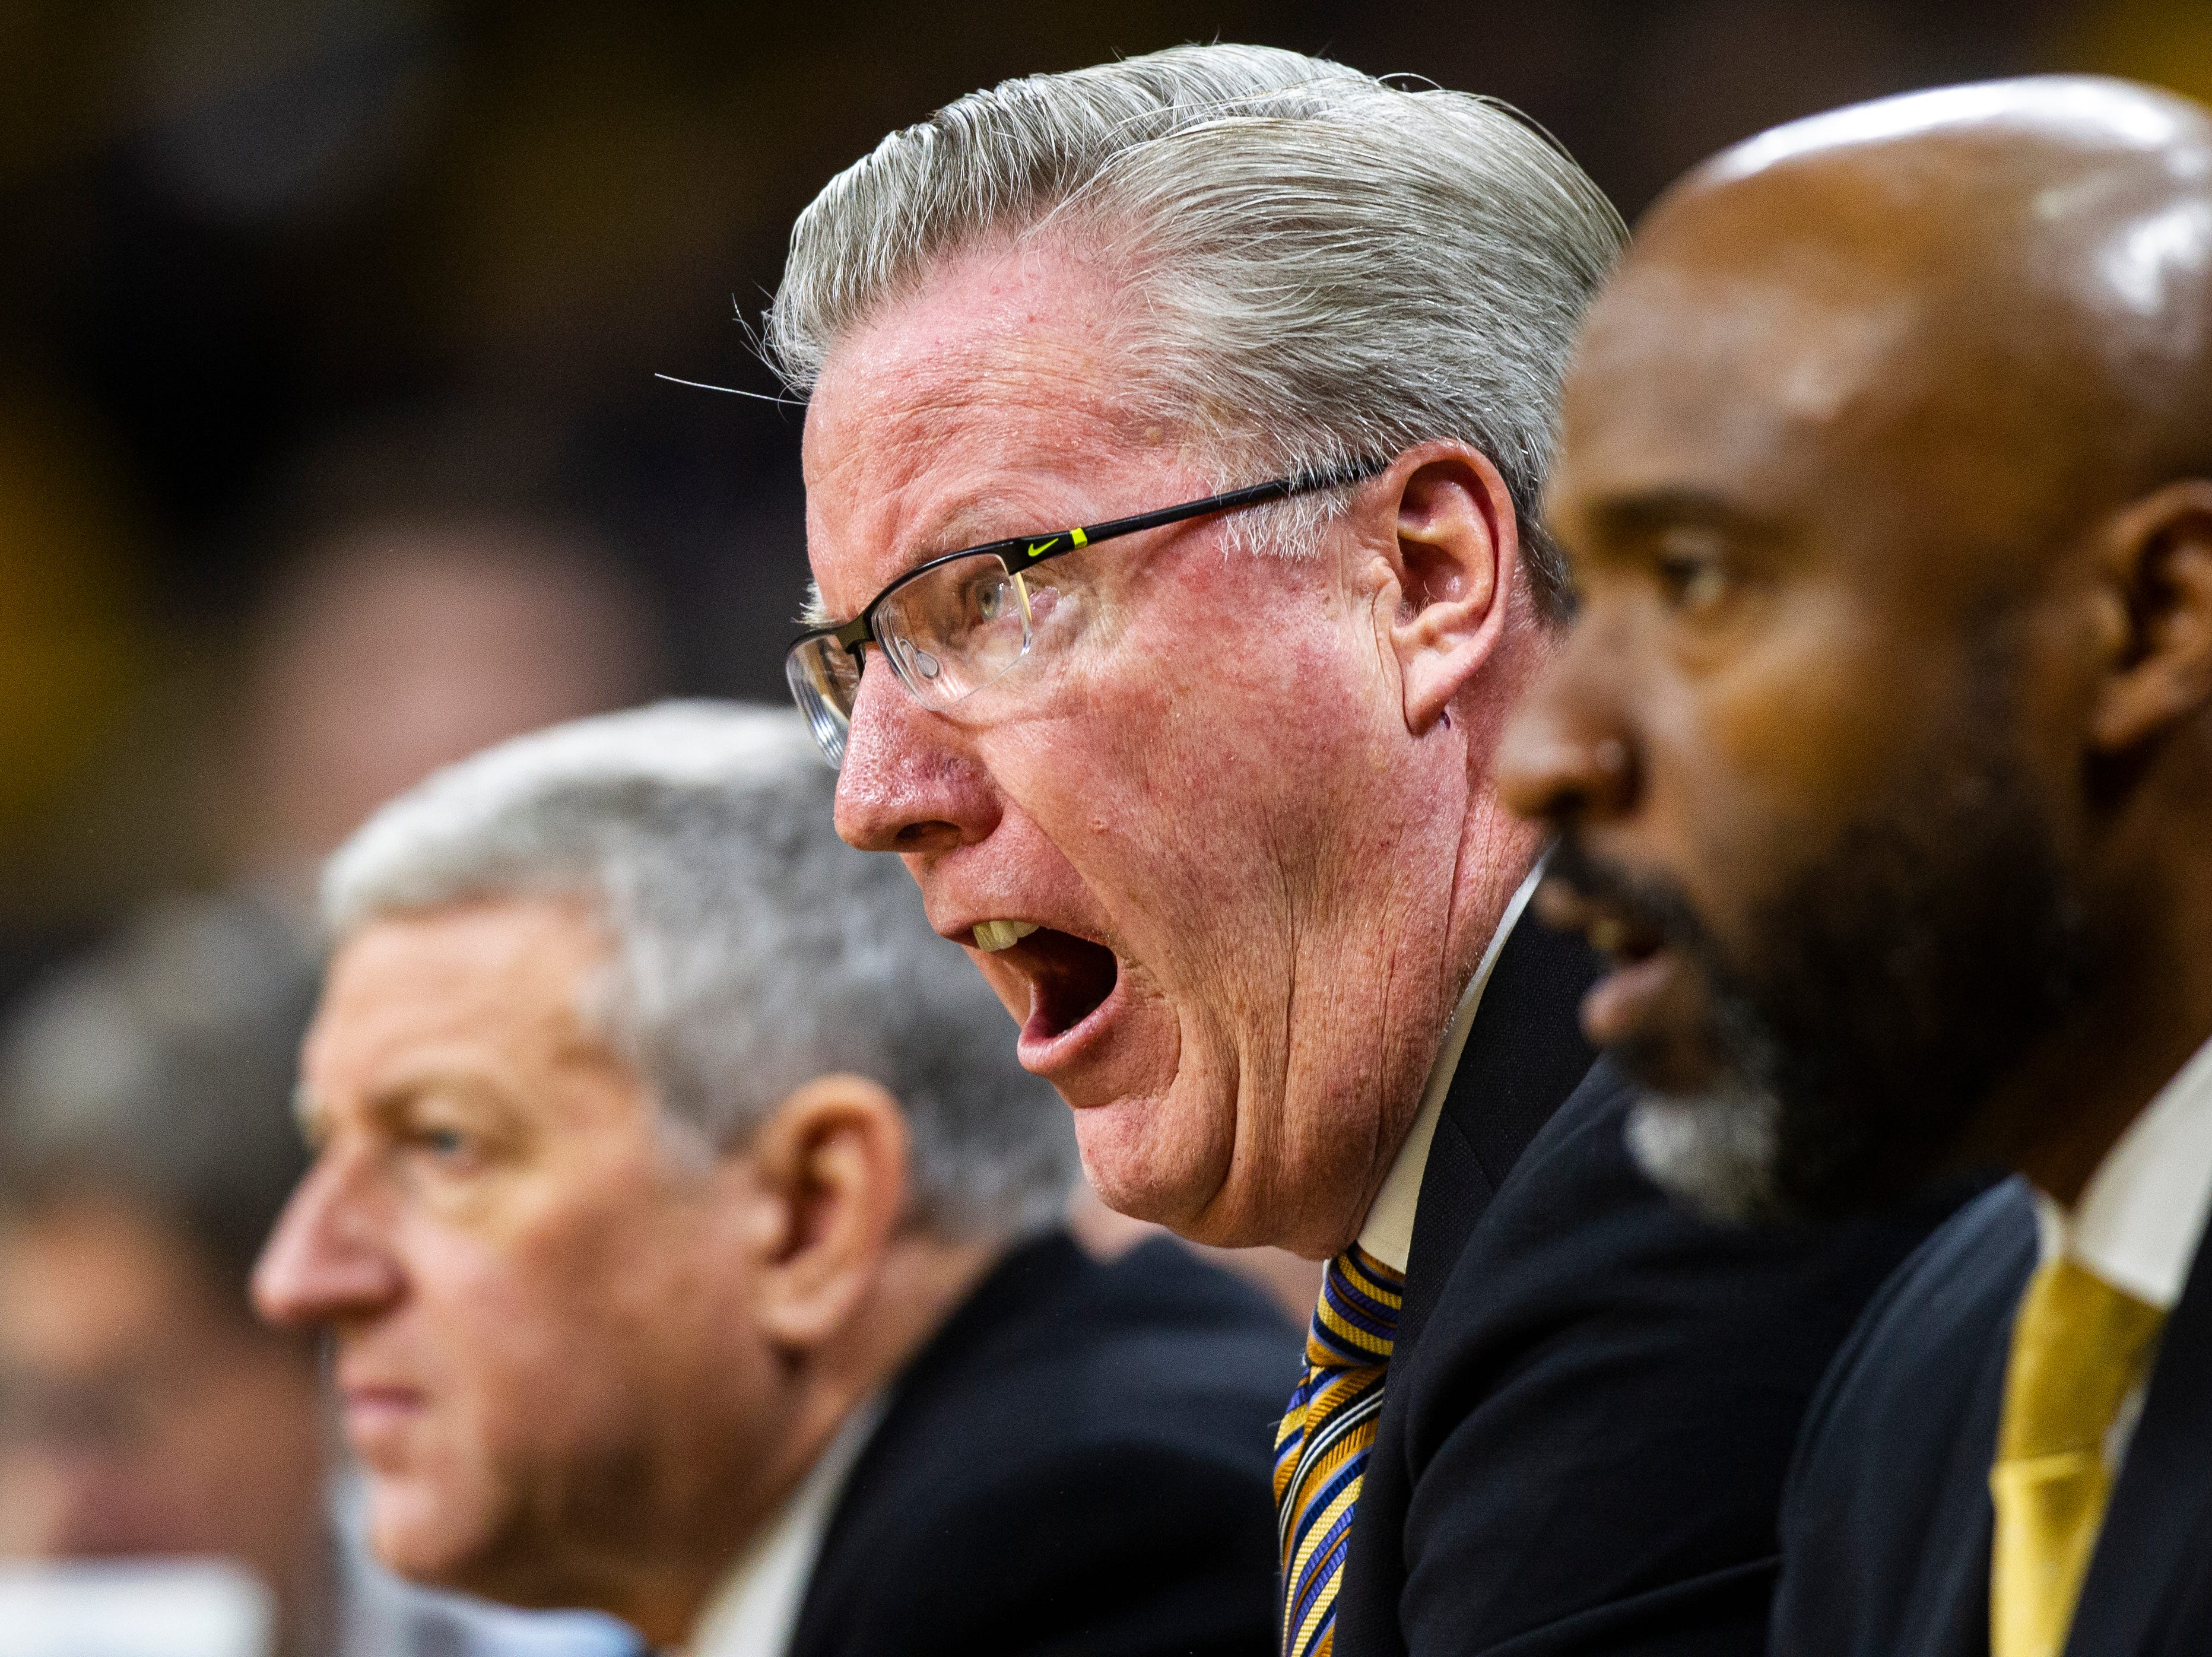 Iowa men's basketball head coach Fran McCaffery calls out to players during a men's basketball exhibition game on Sunday, Nov. 4, 2018, at Carver-Hawkeye Arena in Iowa City.